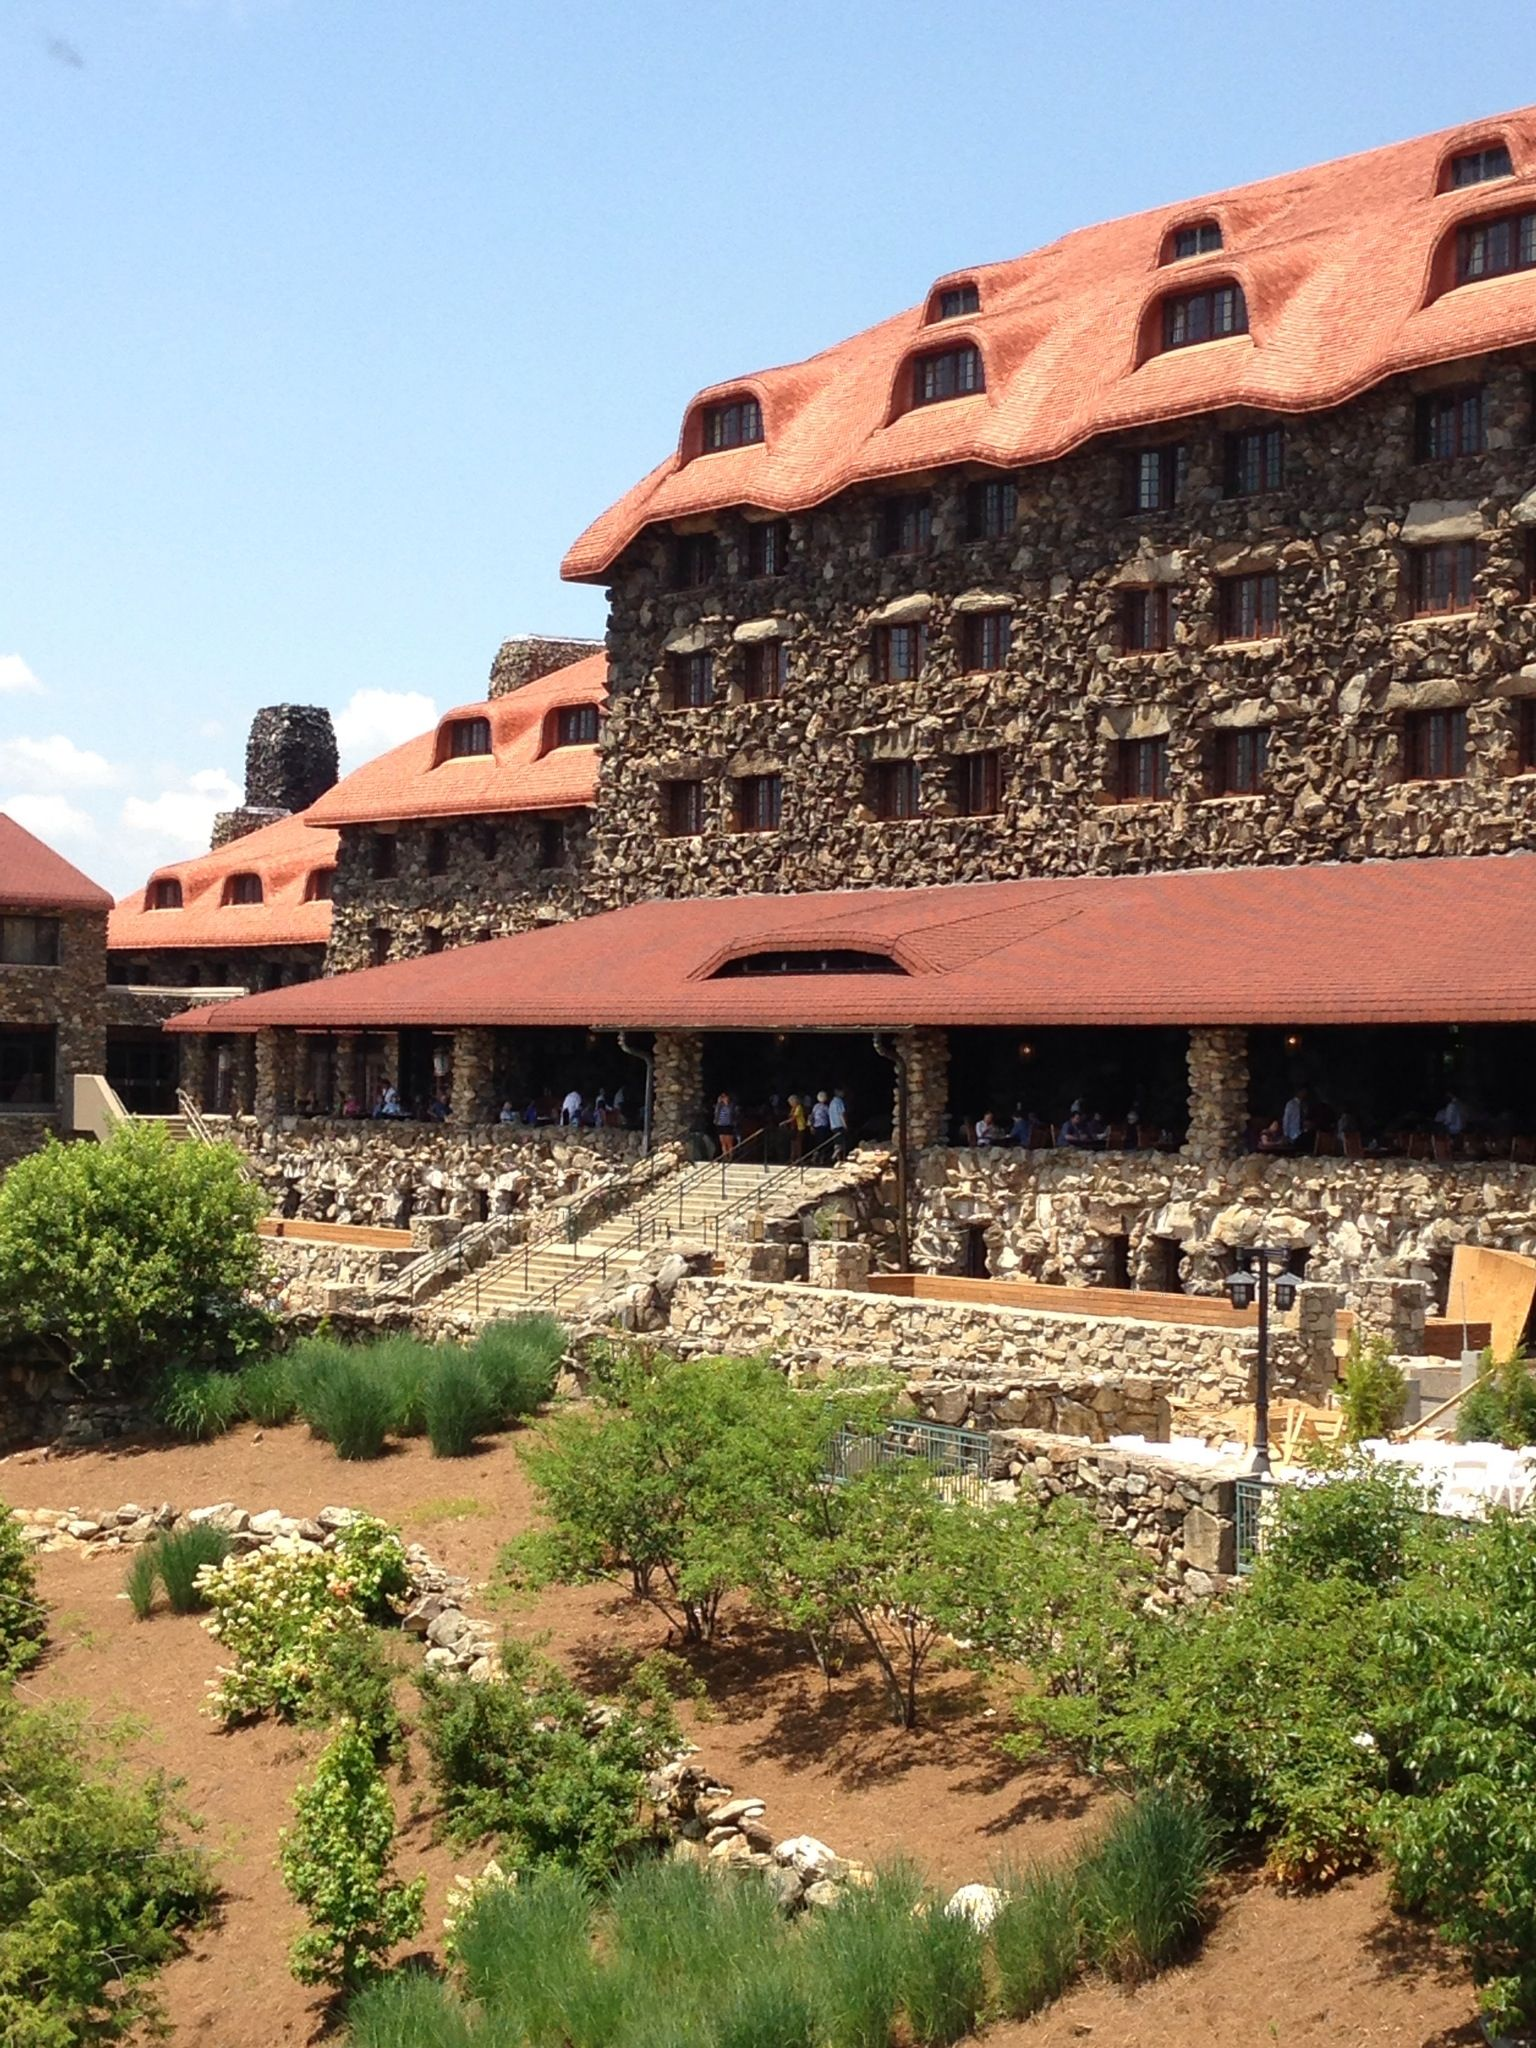 Wonderful lunch today at The Grove Park Inn in Asheville, NC. What a lovely place! Can't wait to ...